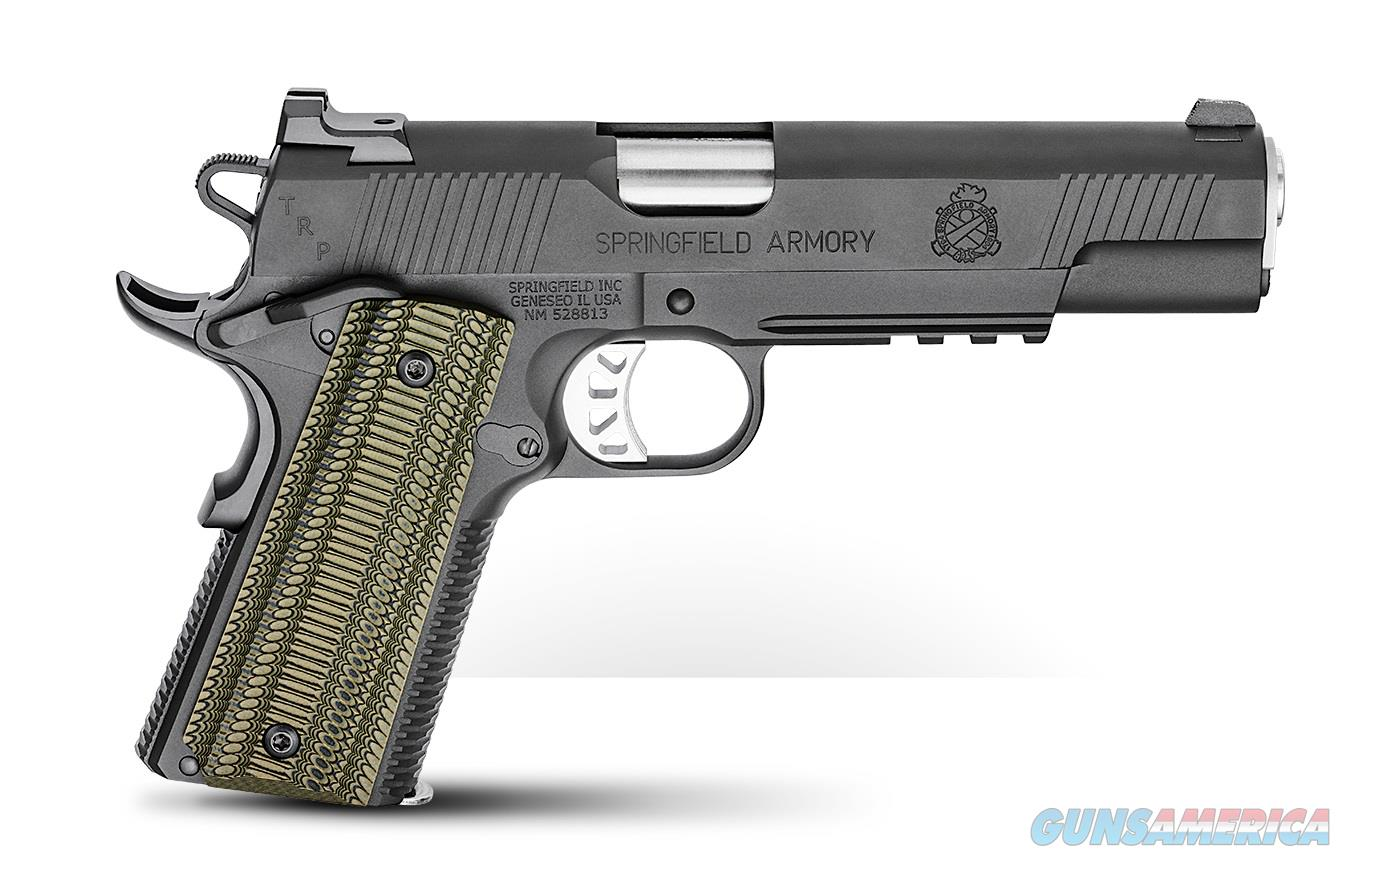 Springfield 1911 TRP Operator 10mm NS Rail PC9510L18 *NEW*  Guns > Pistols > Springfield Armory Pistols > 1911 Type